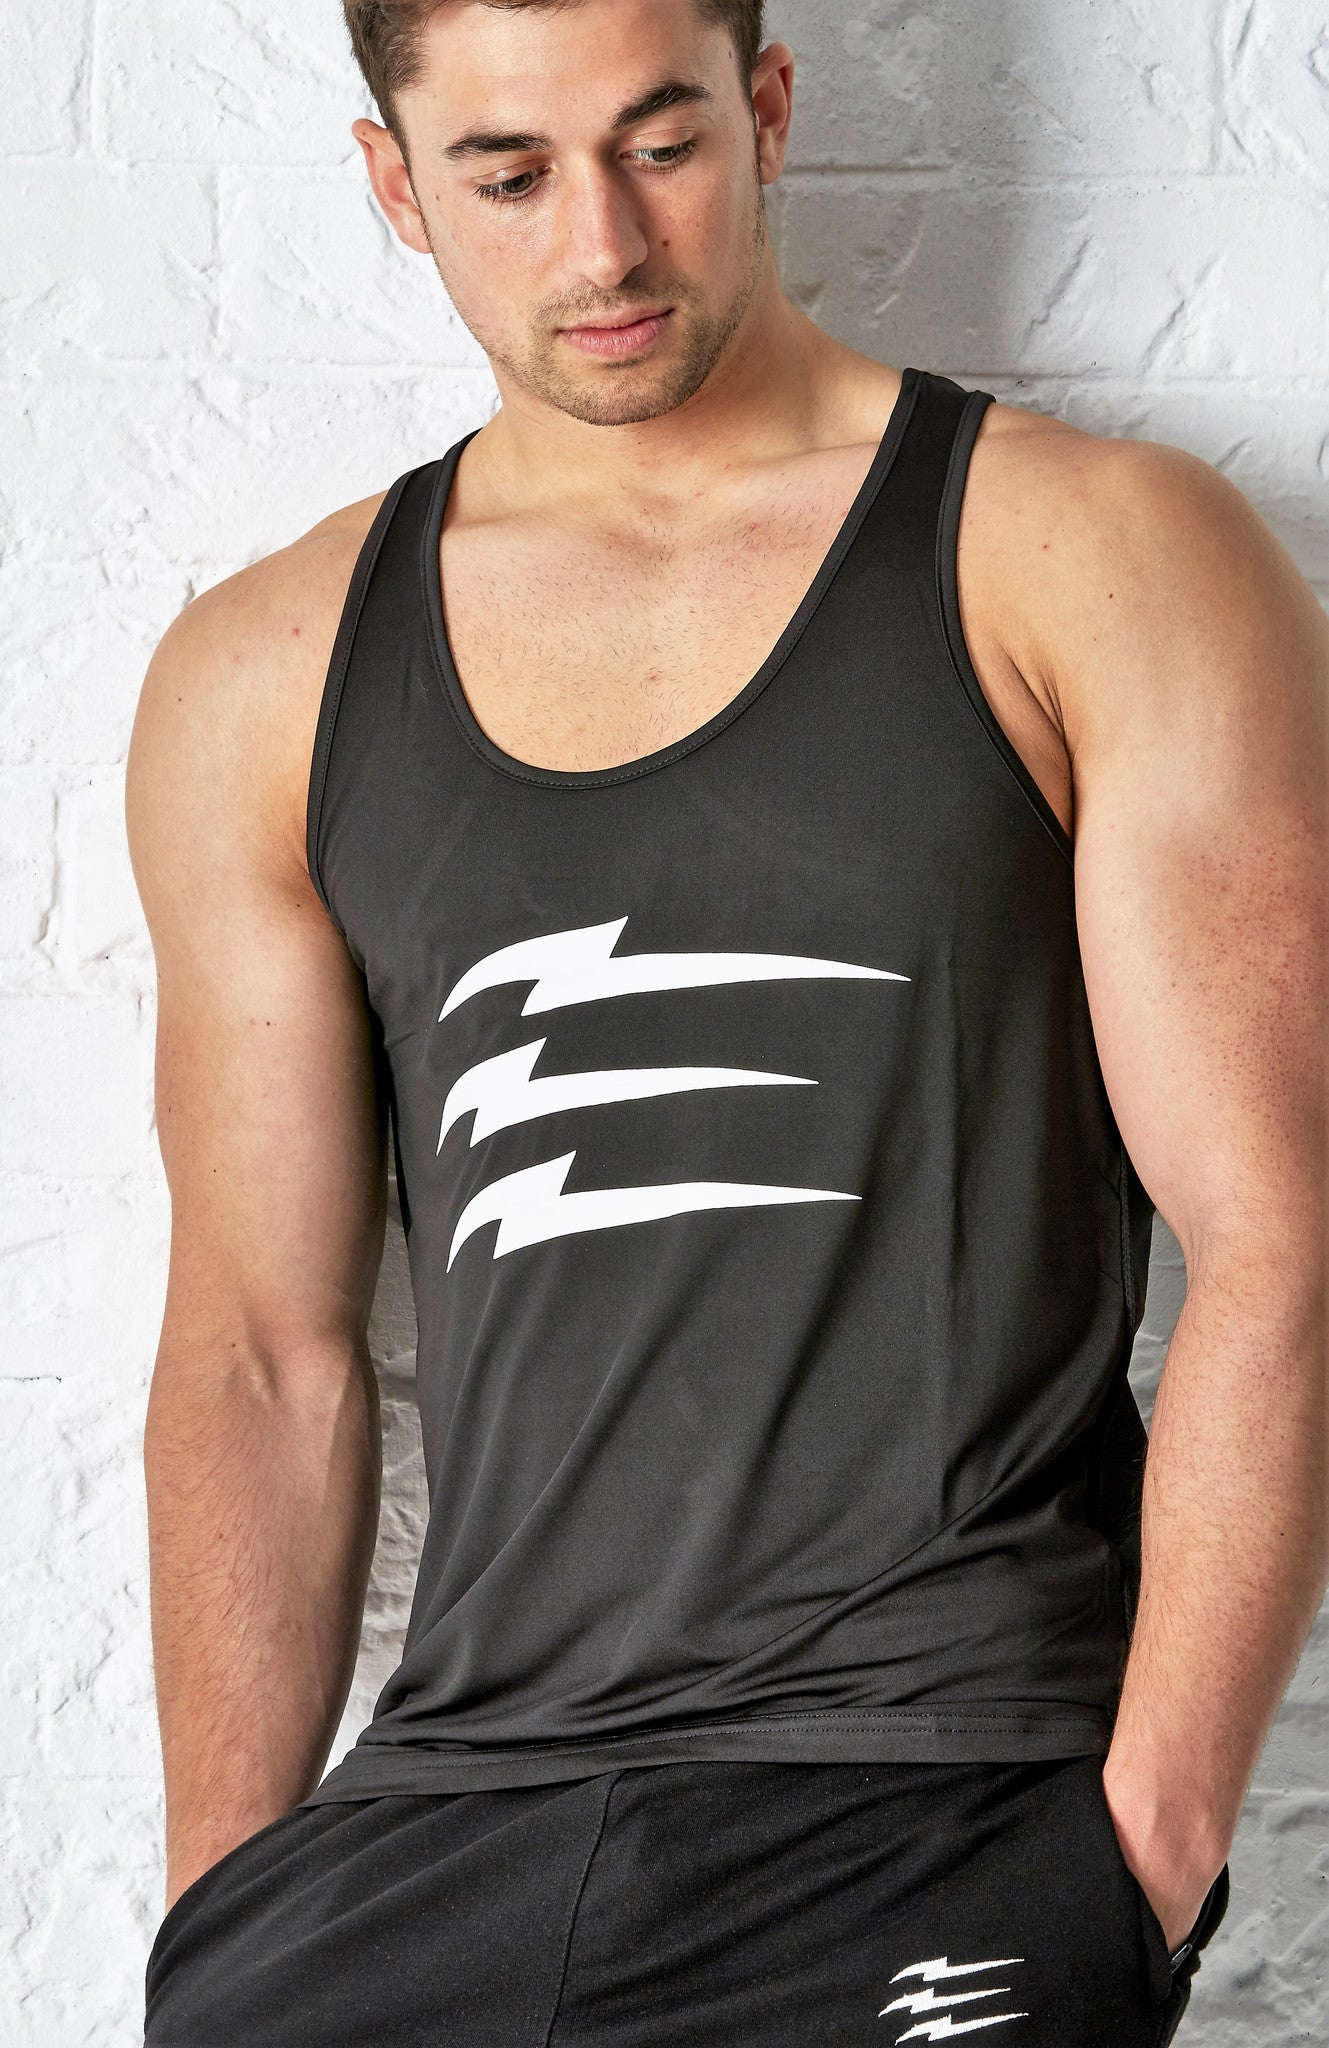 PREDACORE HERO STRINGER - MIDNIGHT BLACK